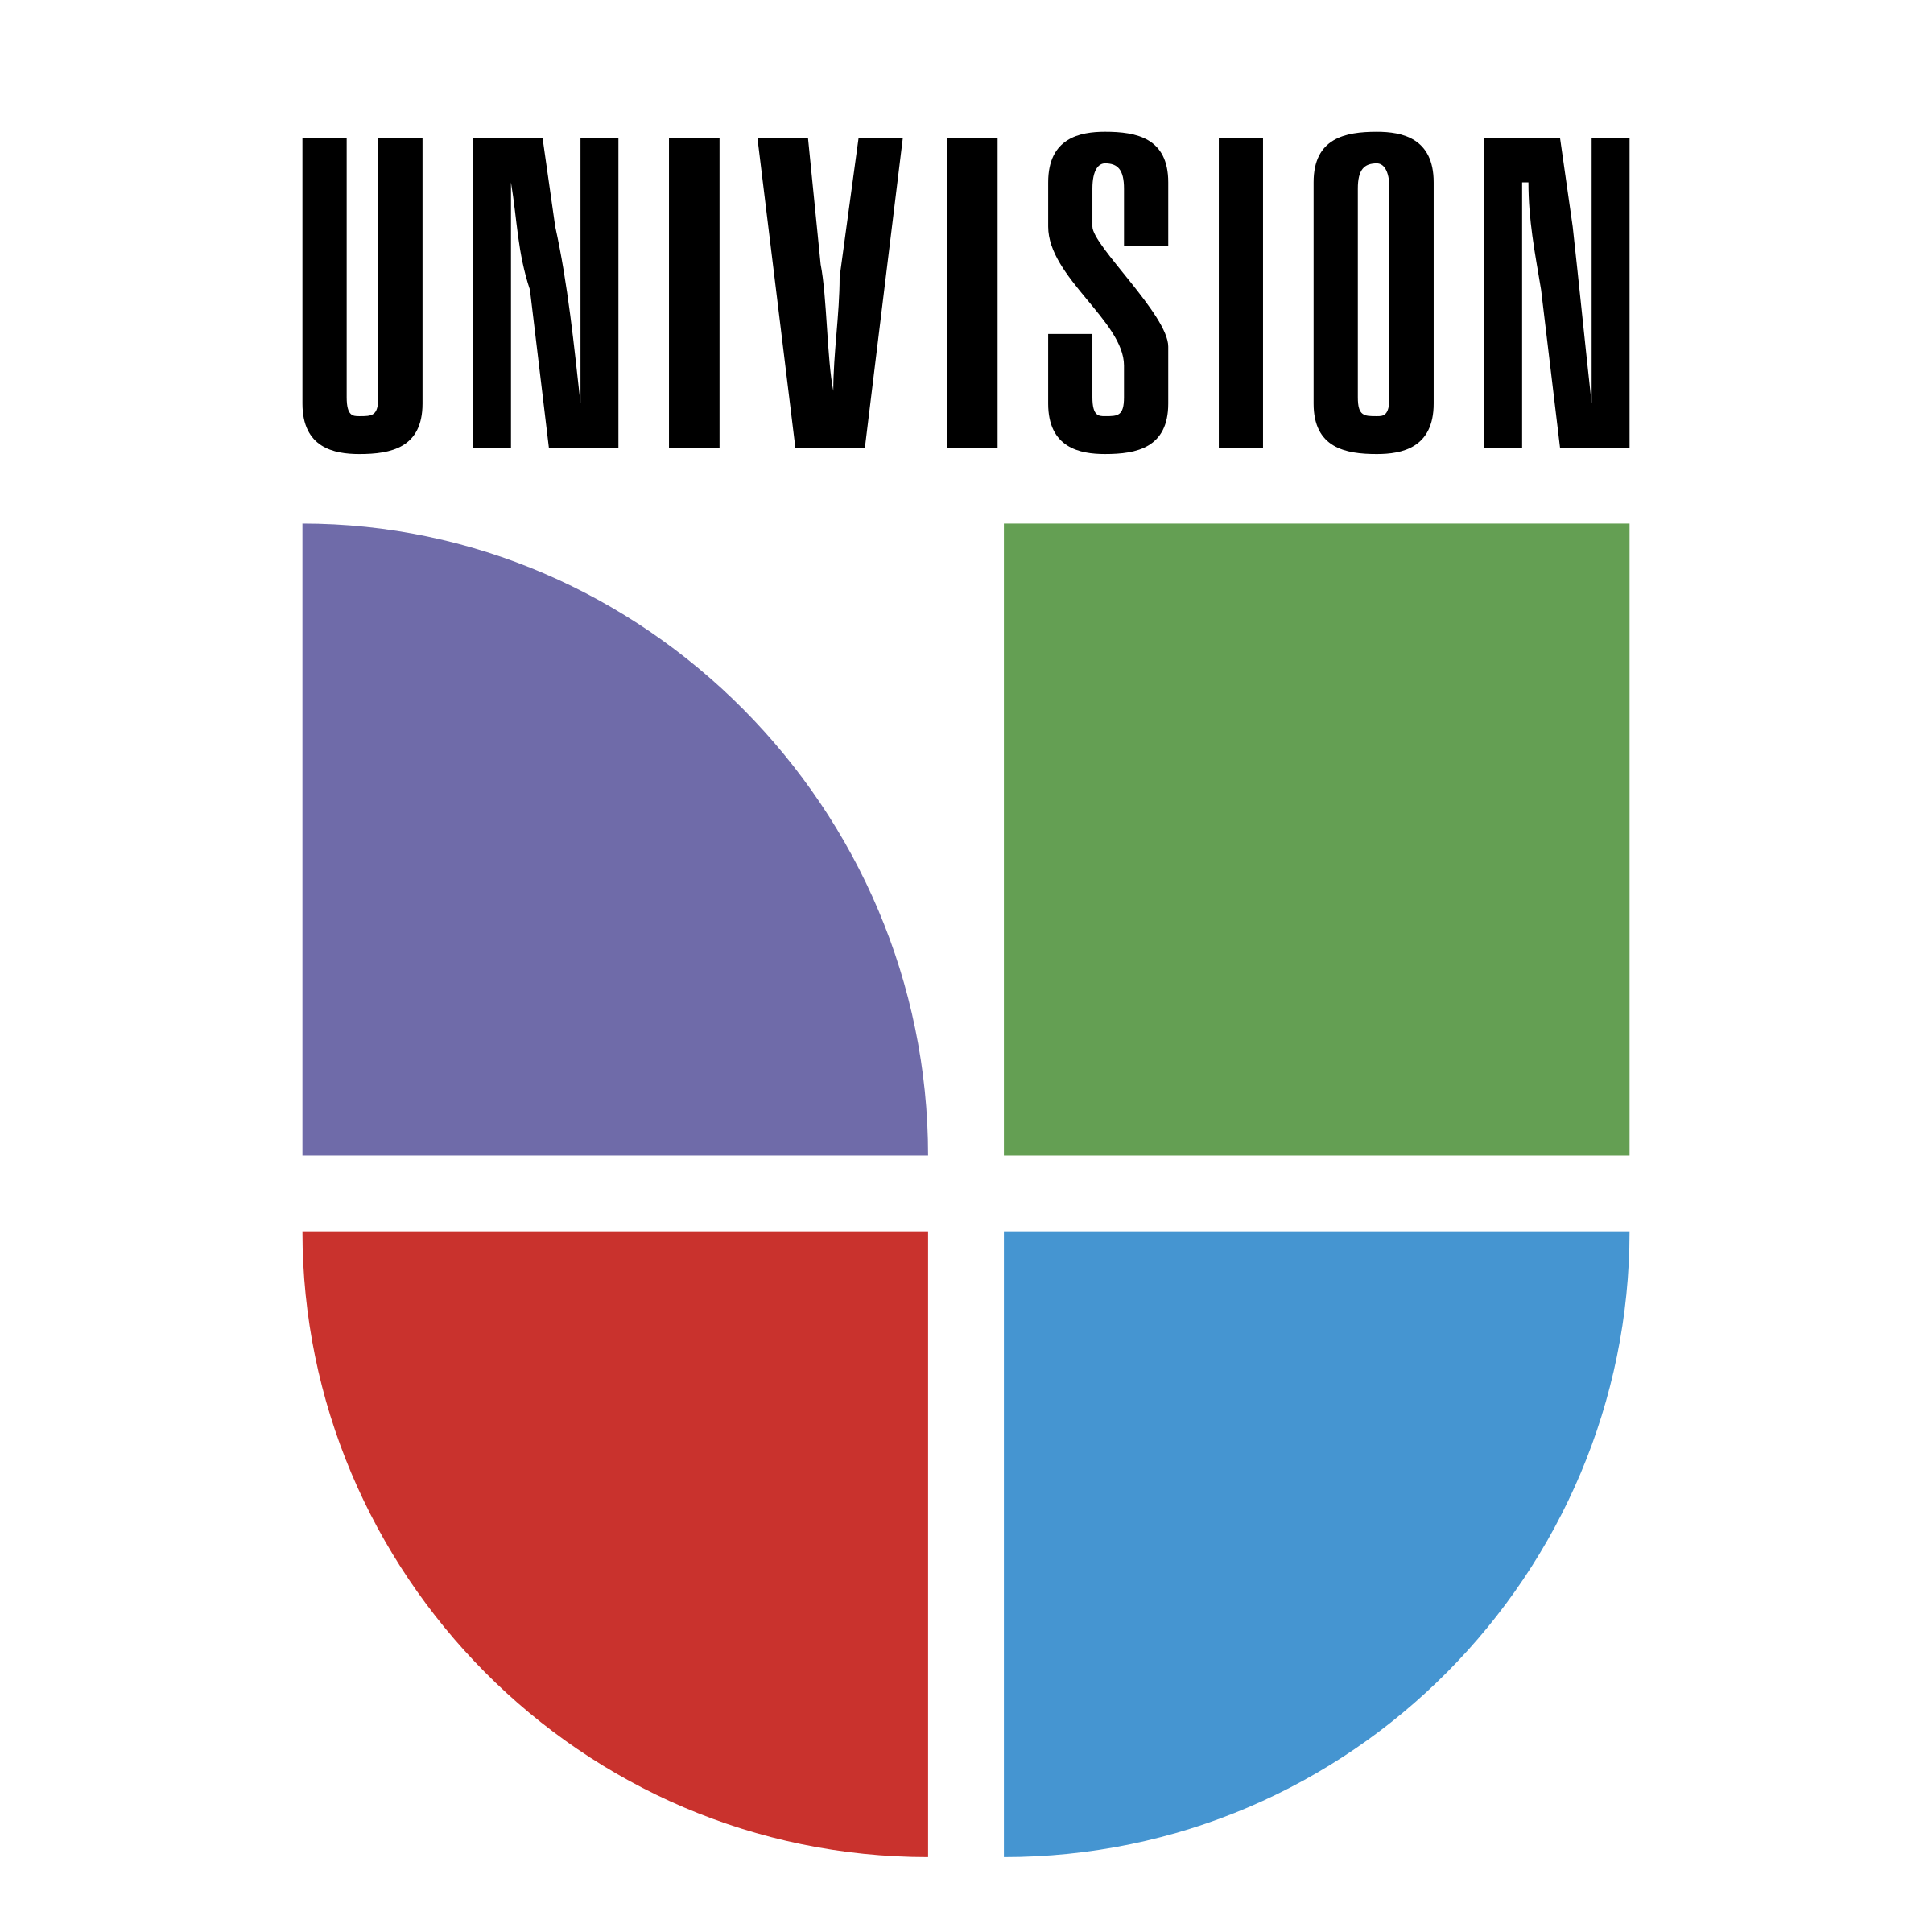 Univision Logo PNG Transparent & SVG Vector.